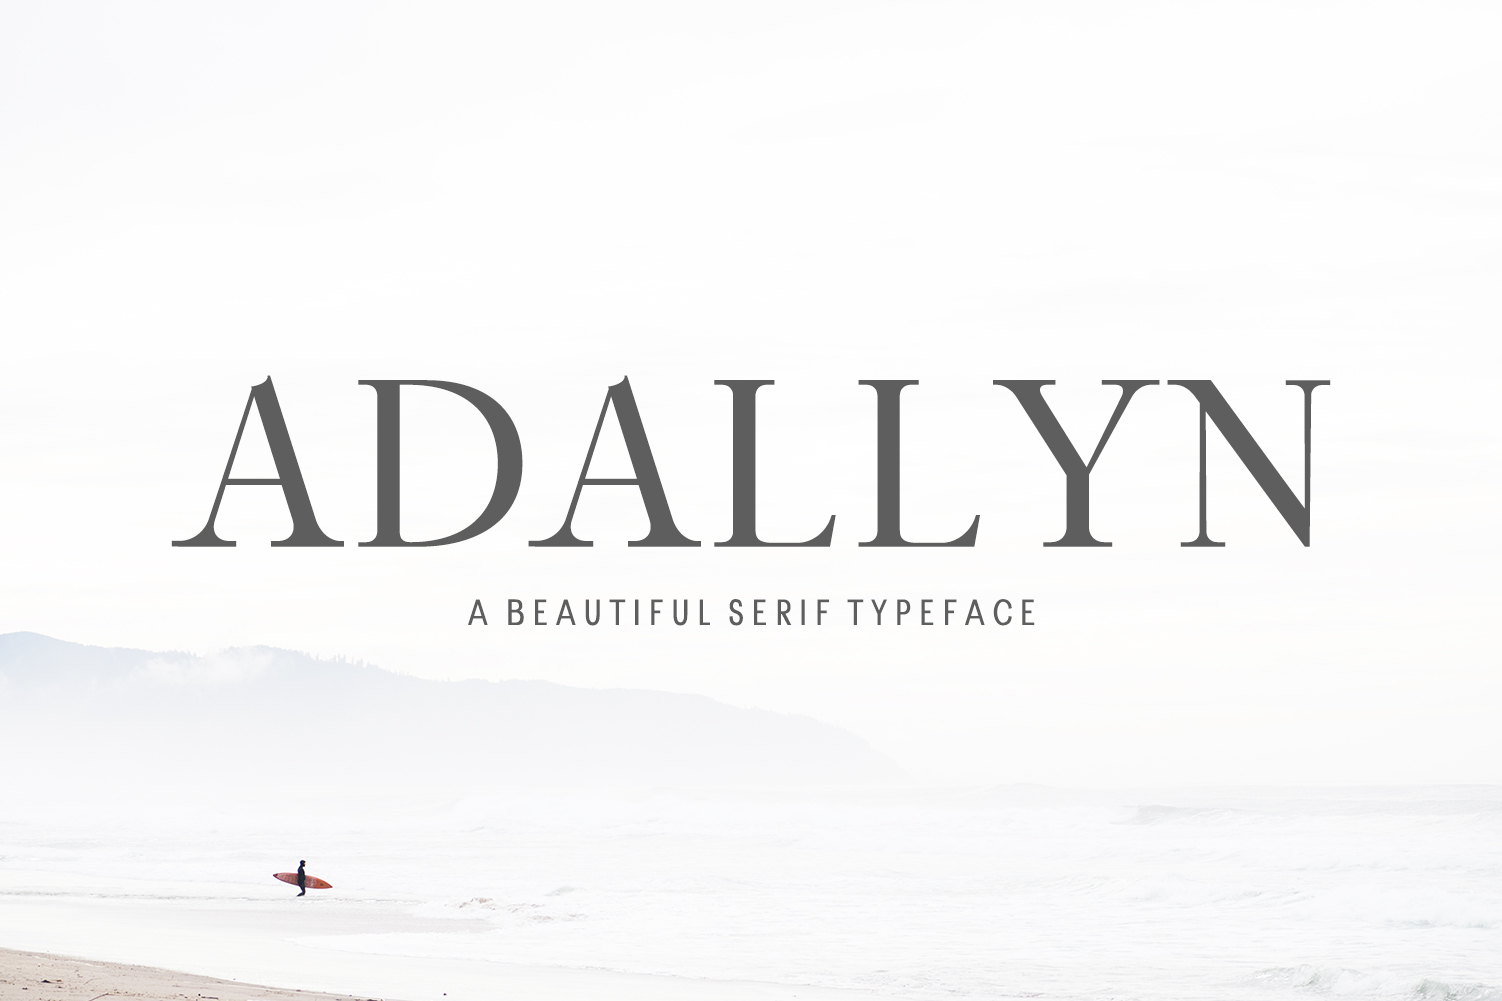 Adallyn Serif Font Family Pack example image 1